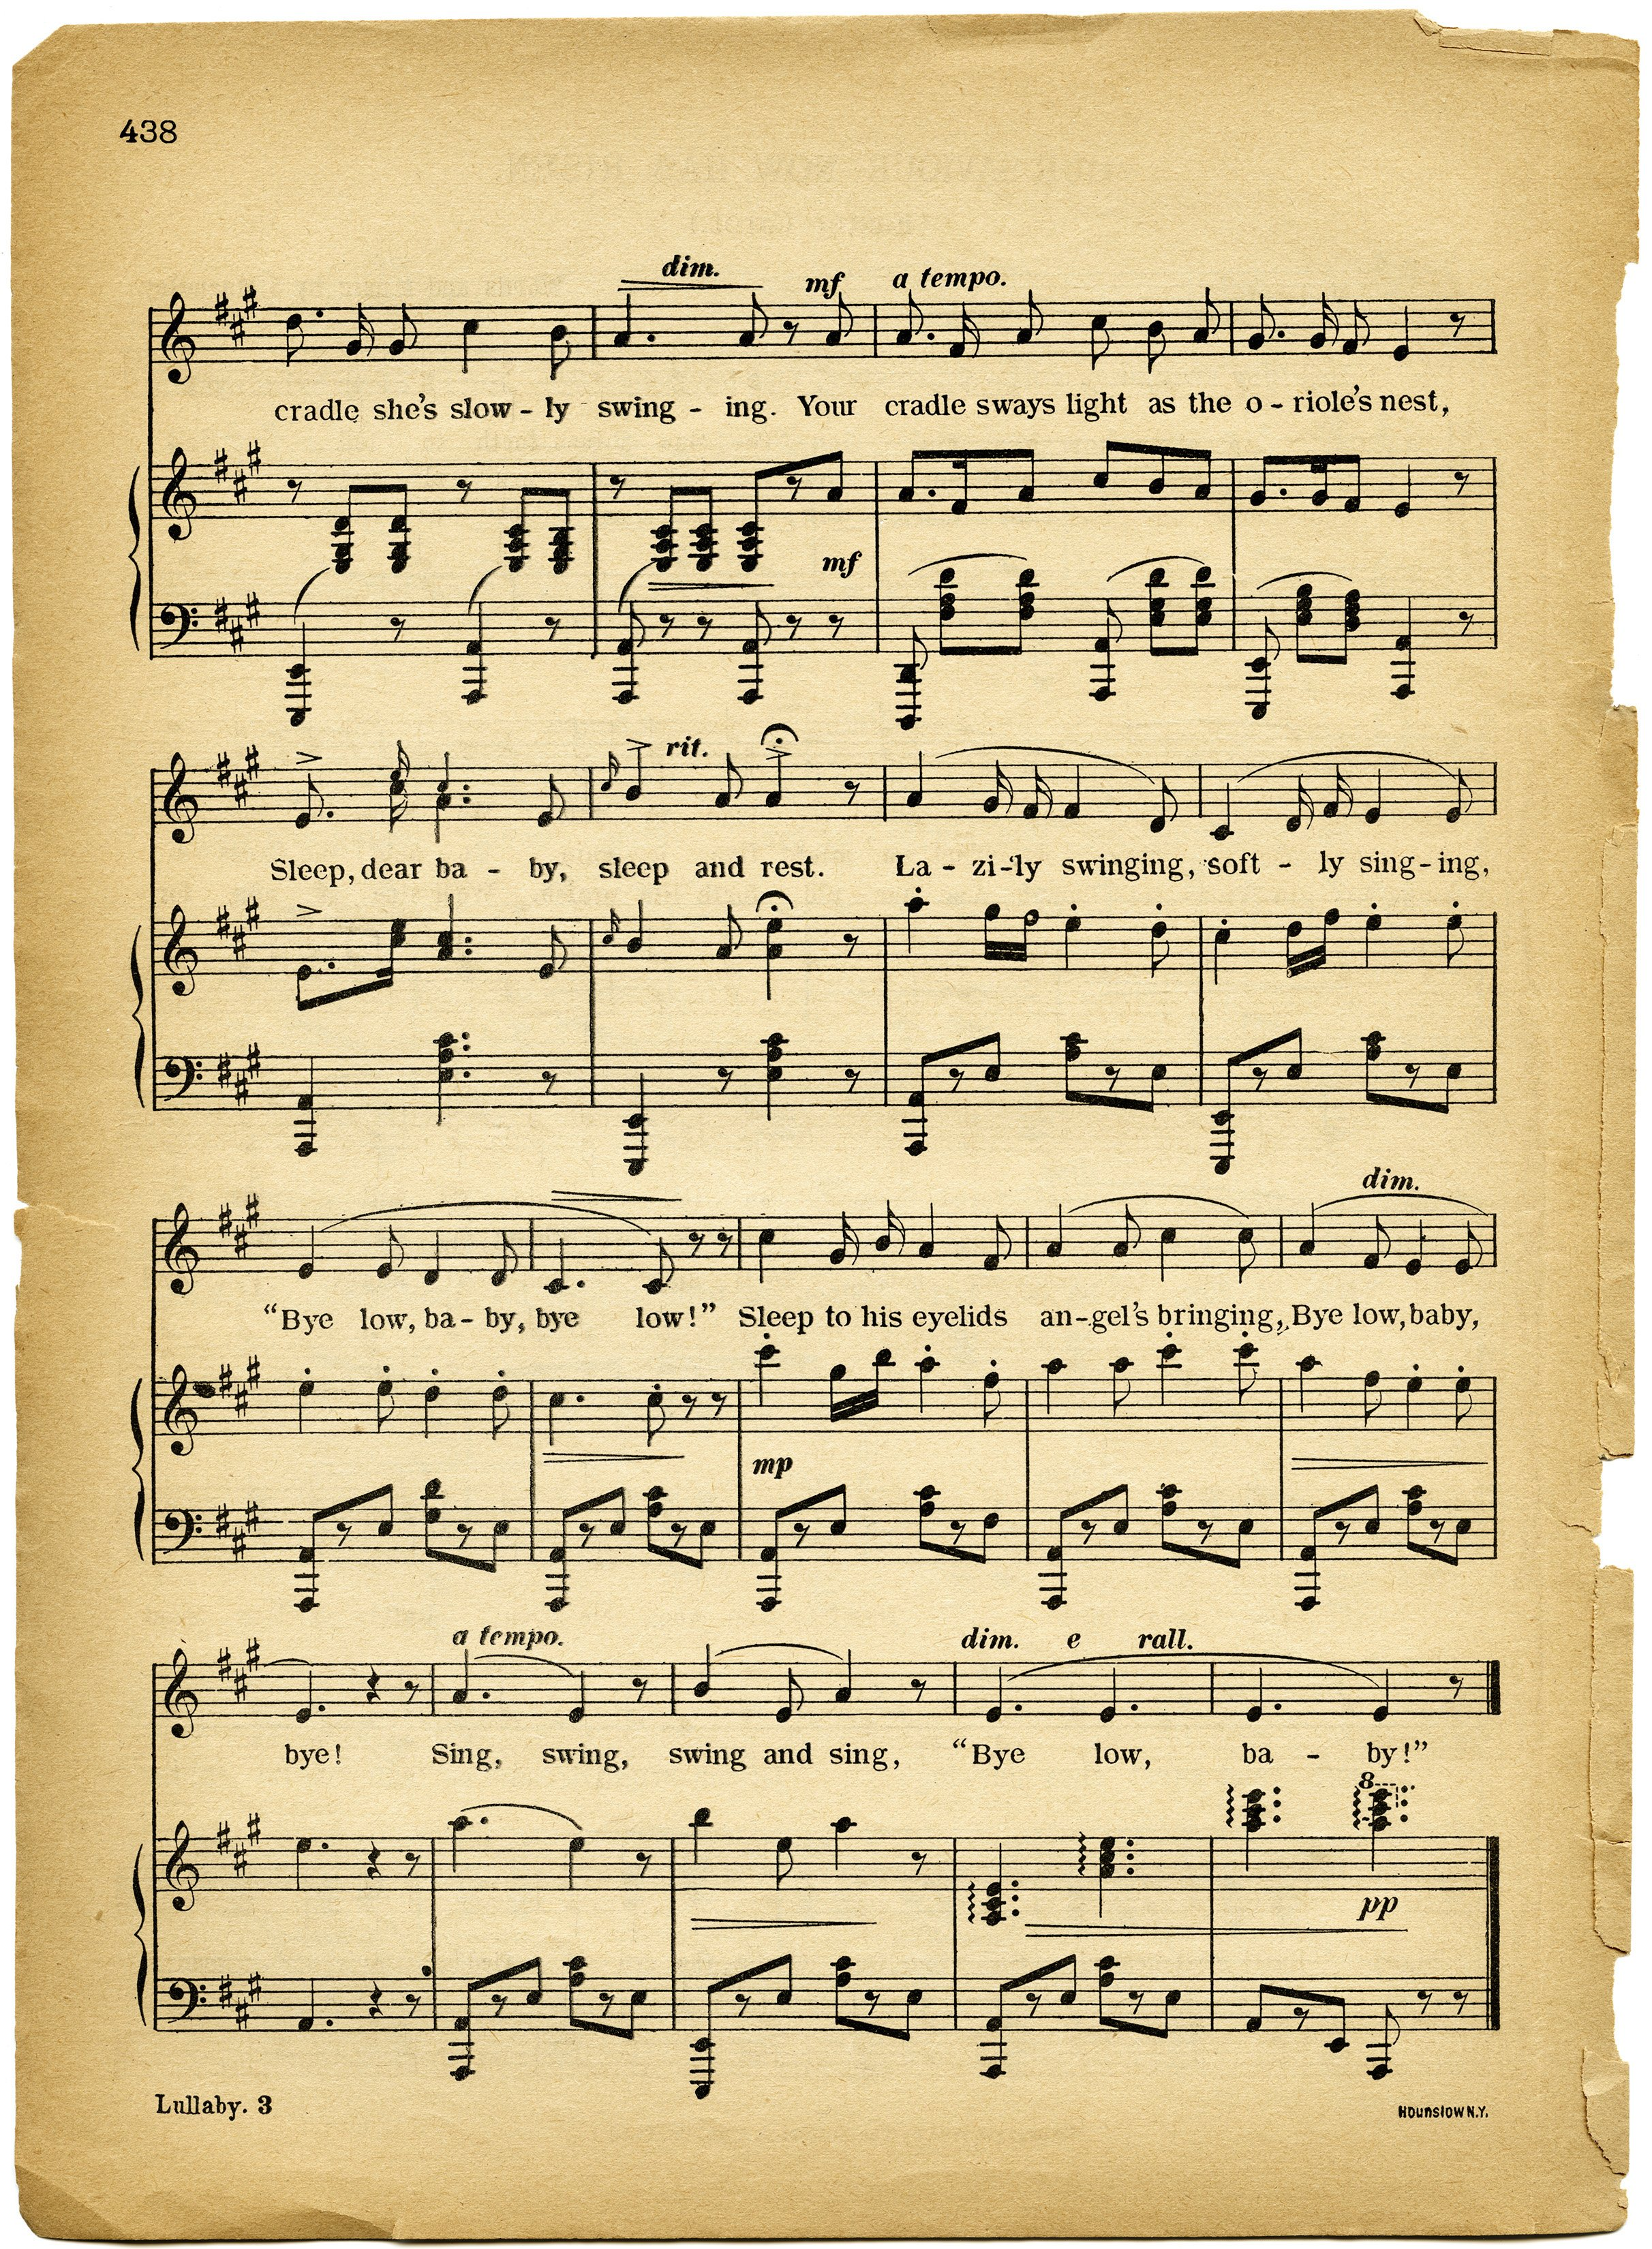 Vintage Images Lullaby Sheet Music 2424x3300